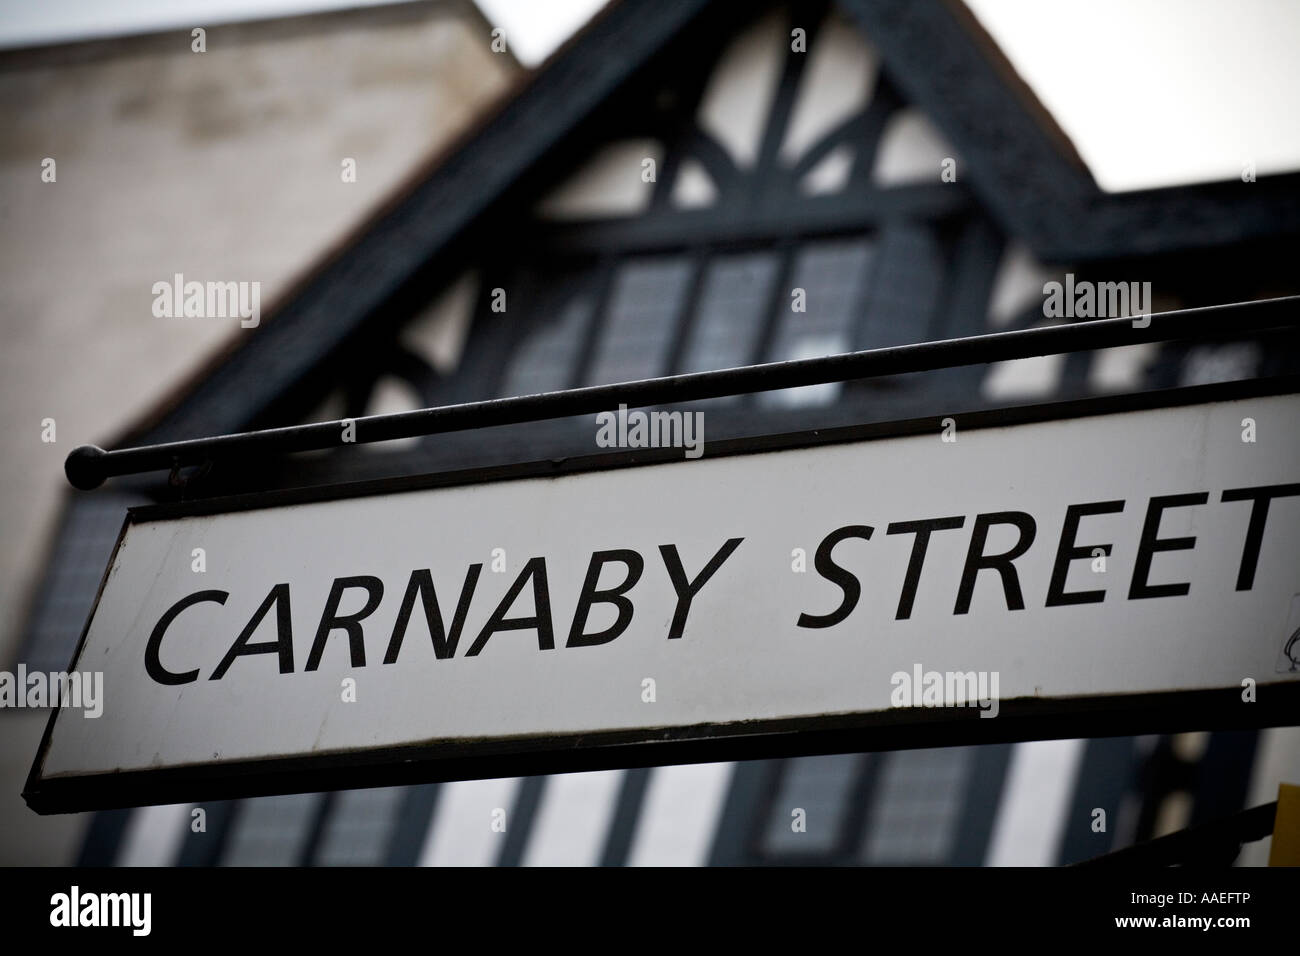 Carnaby Street road sign with Libertys in the background - Stock Image